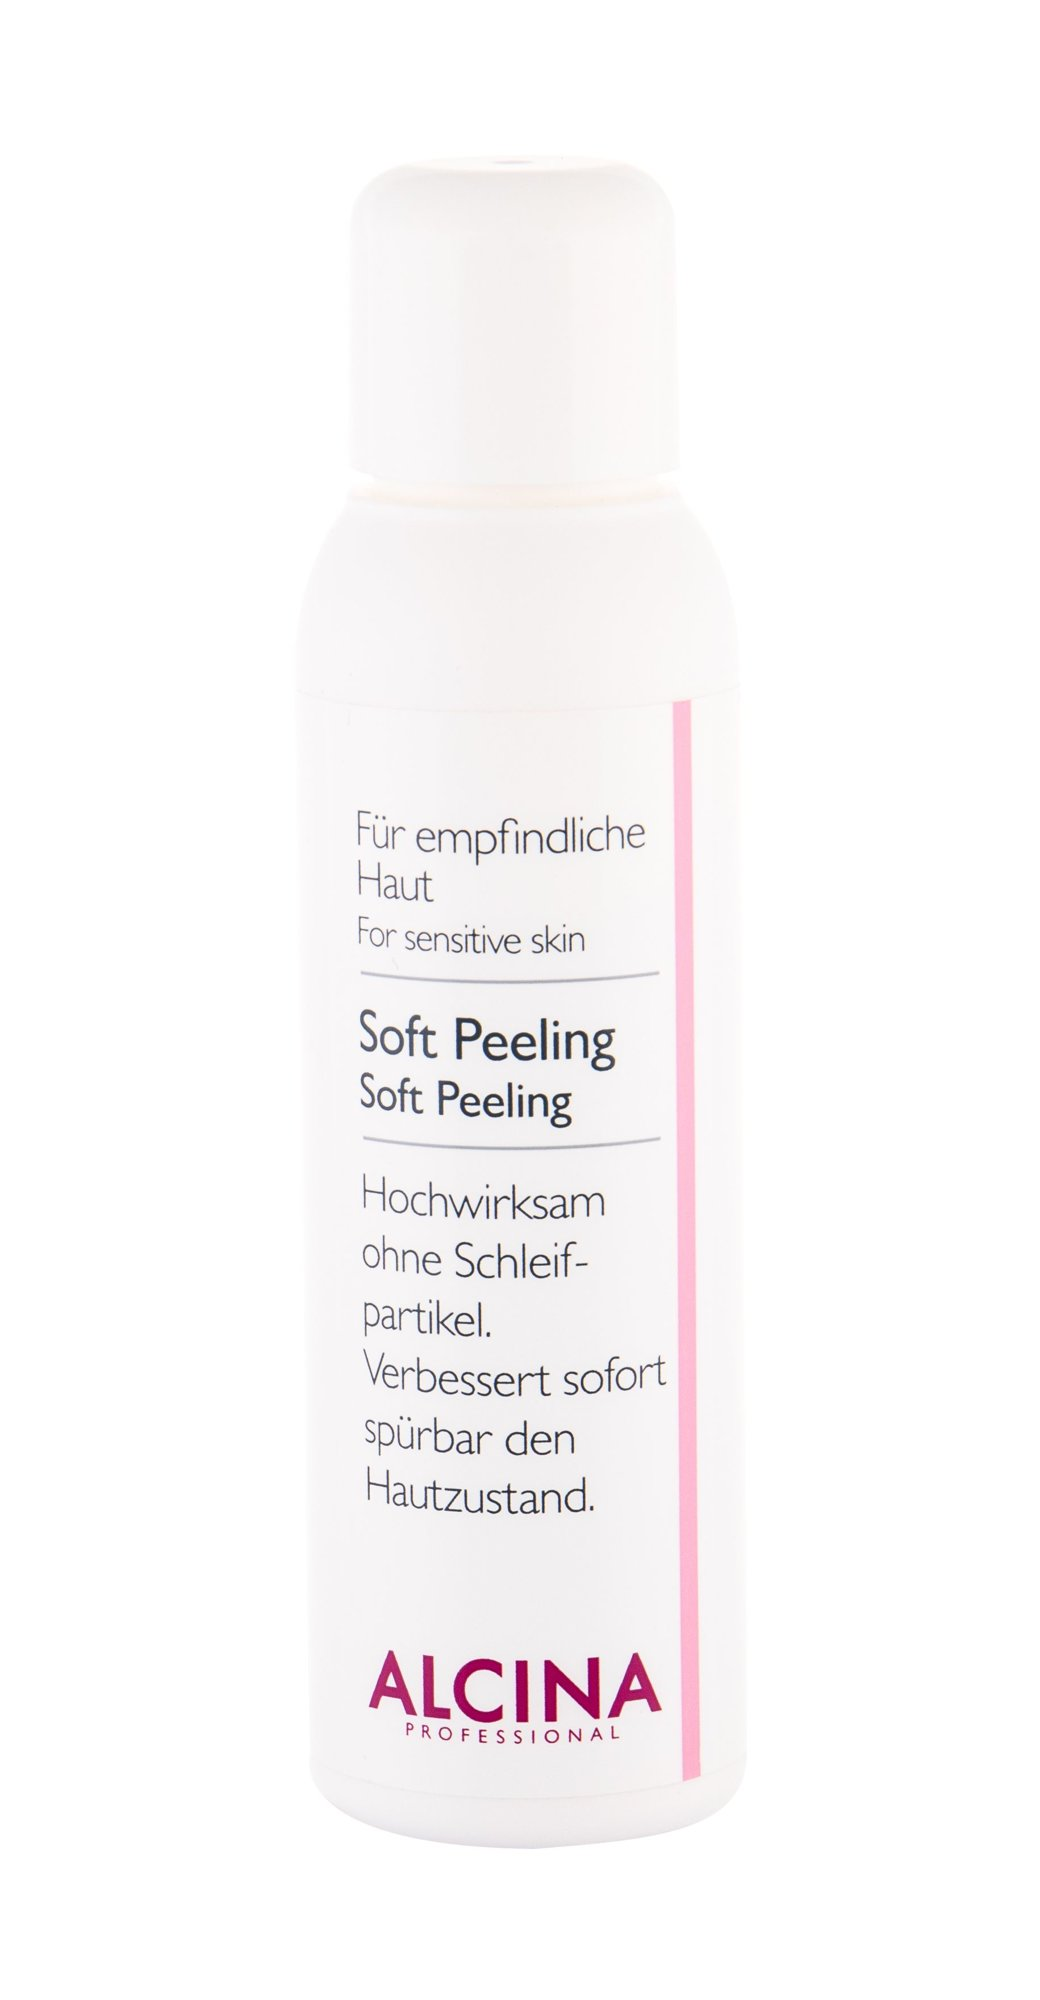 ALCINA Soft Peeling 25ml